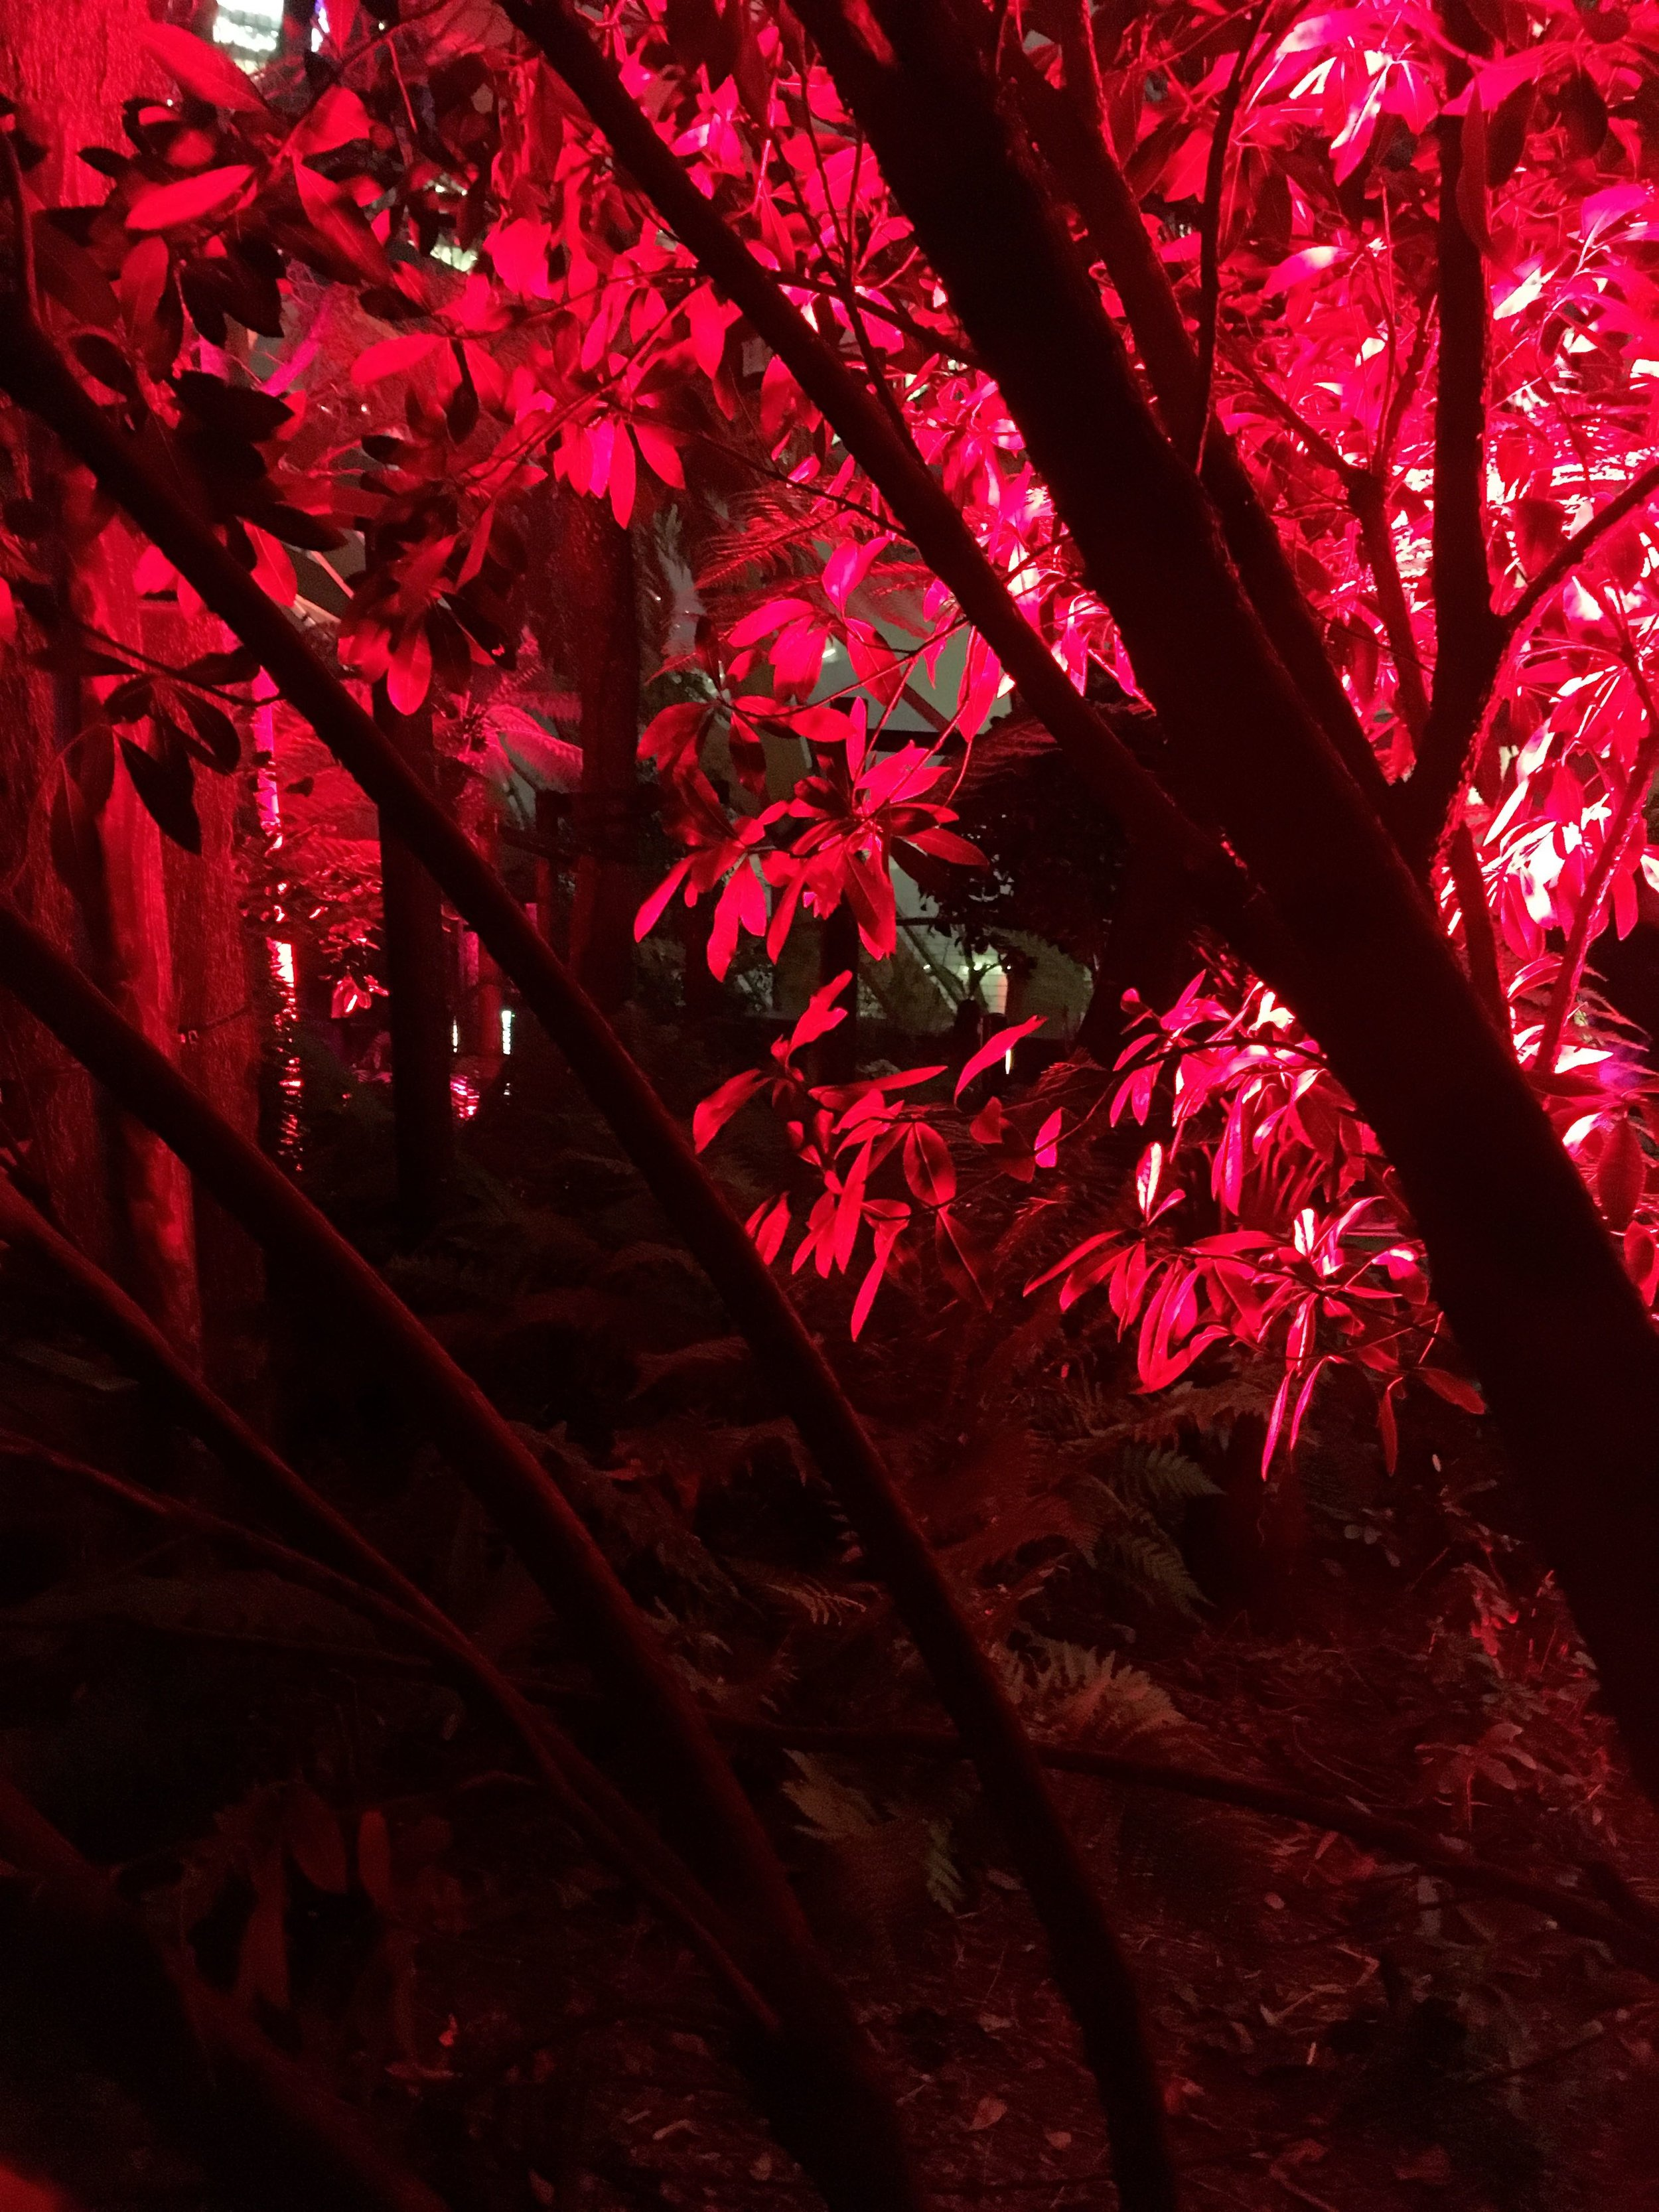 leaves lit up red and looking great